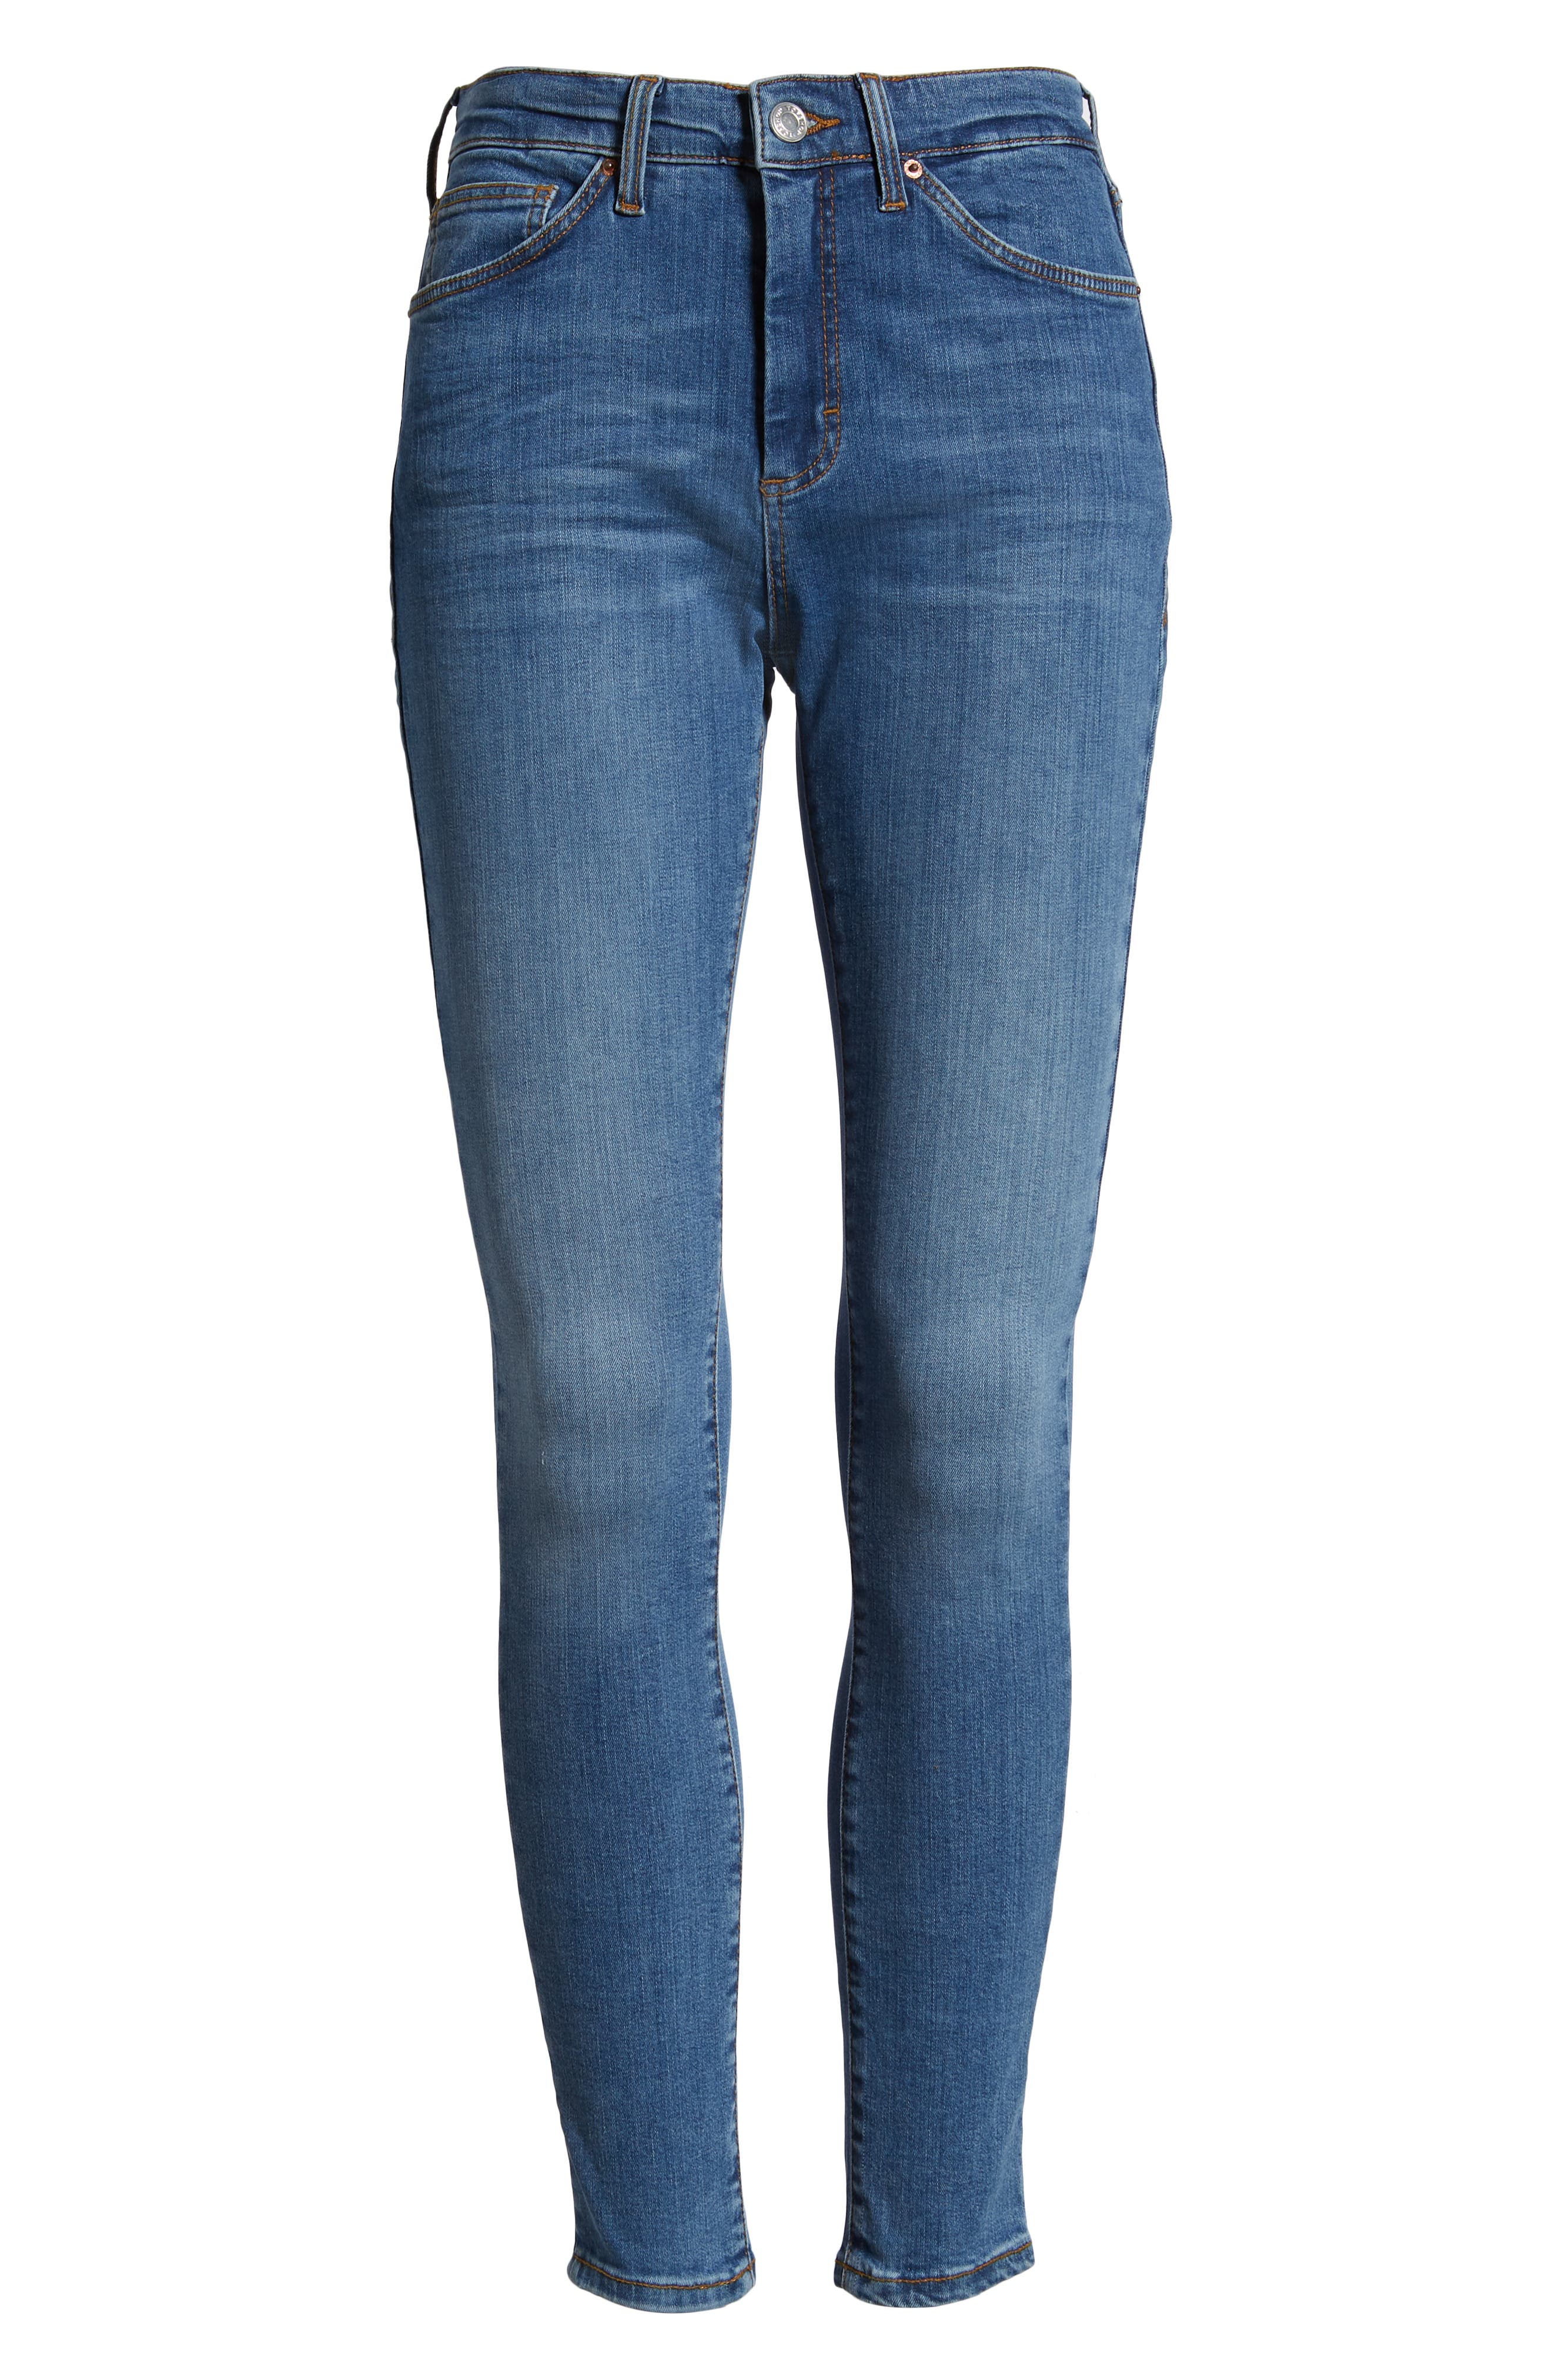 MOTO Sidney Stretch Skinny Jeans,                             Alternate thumbnail 12, color,